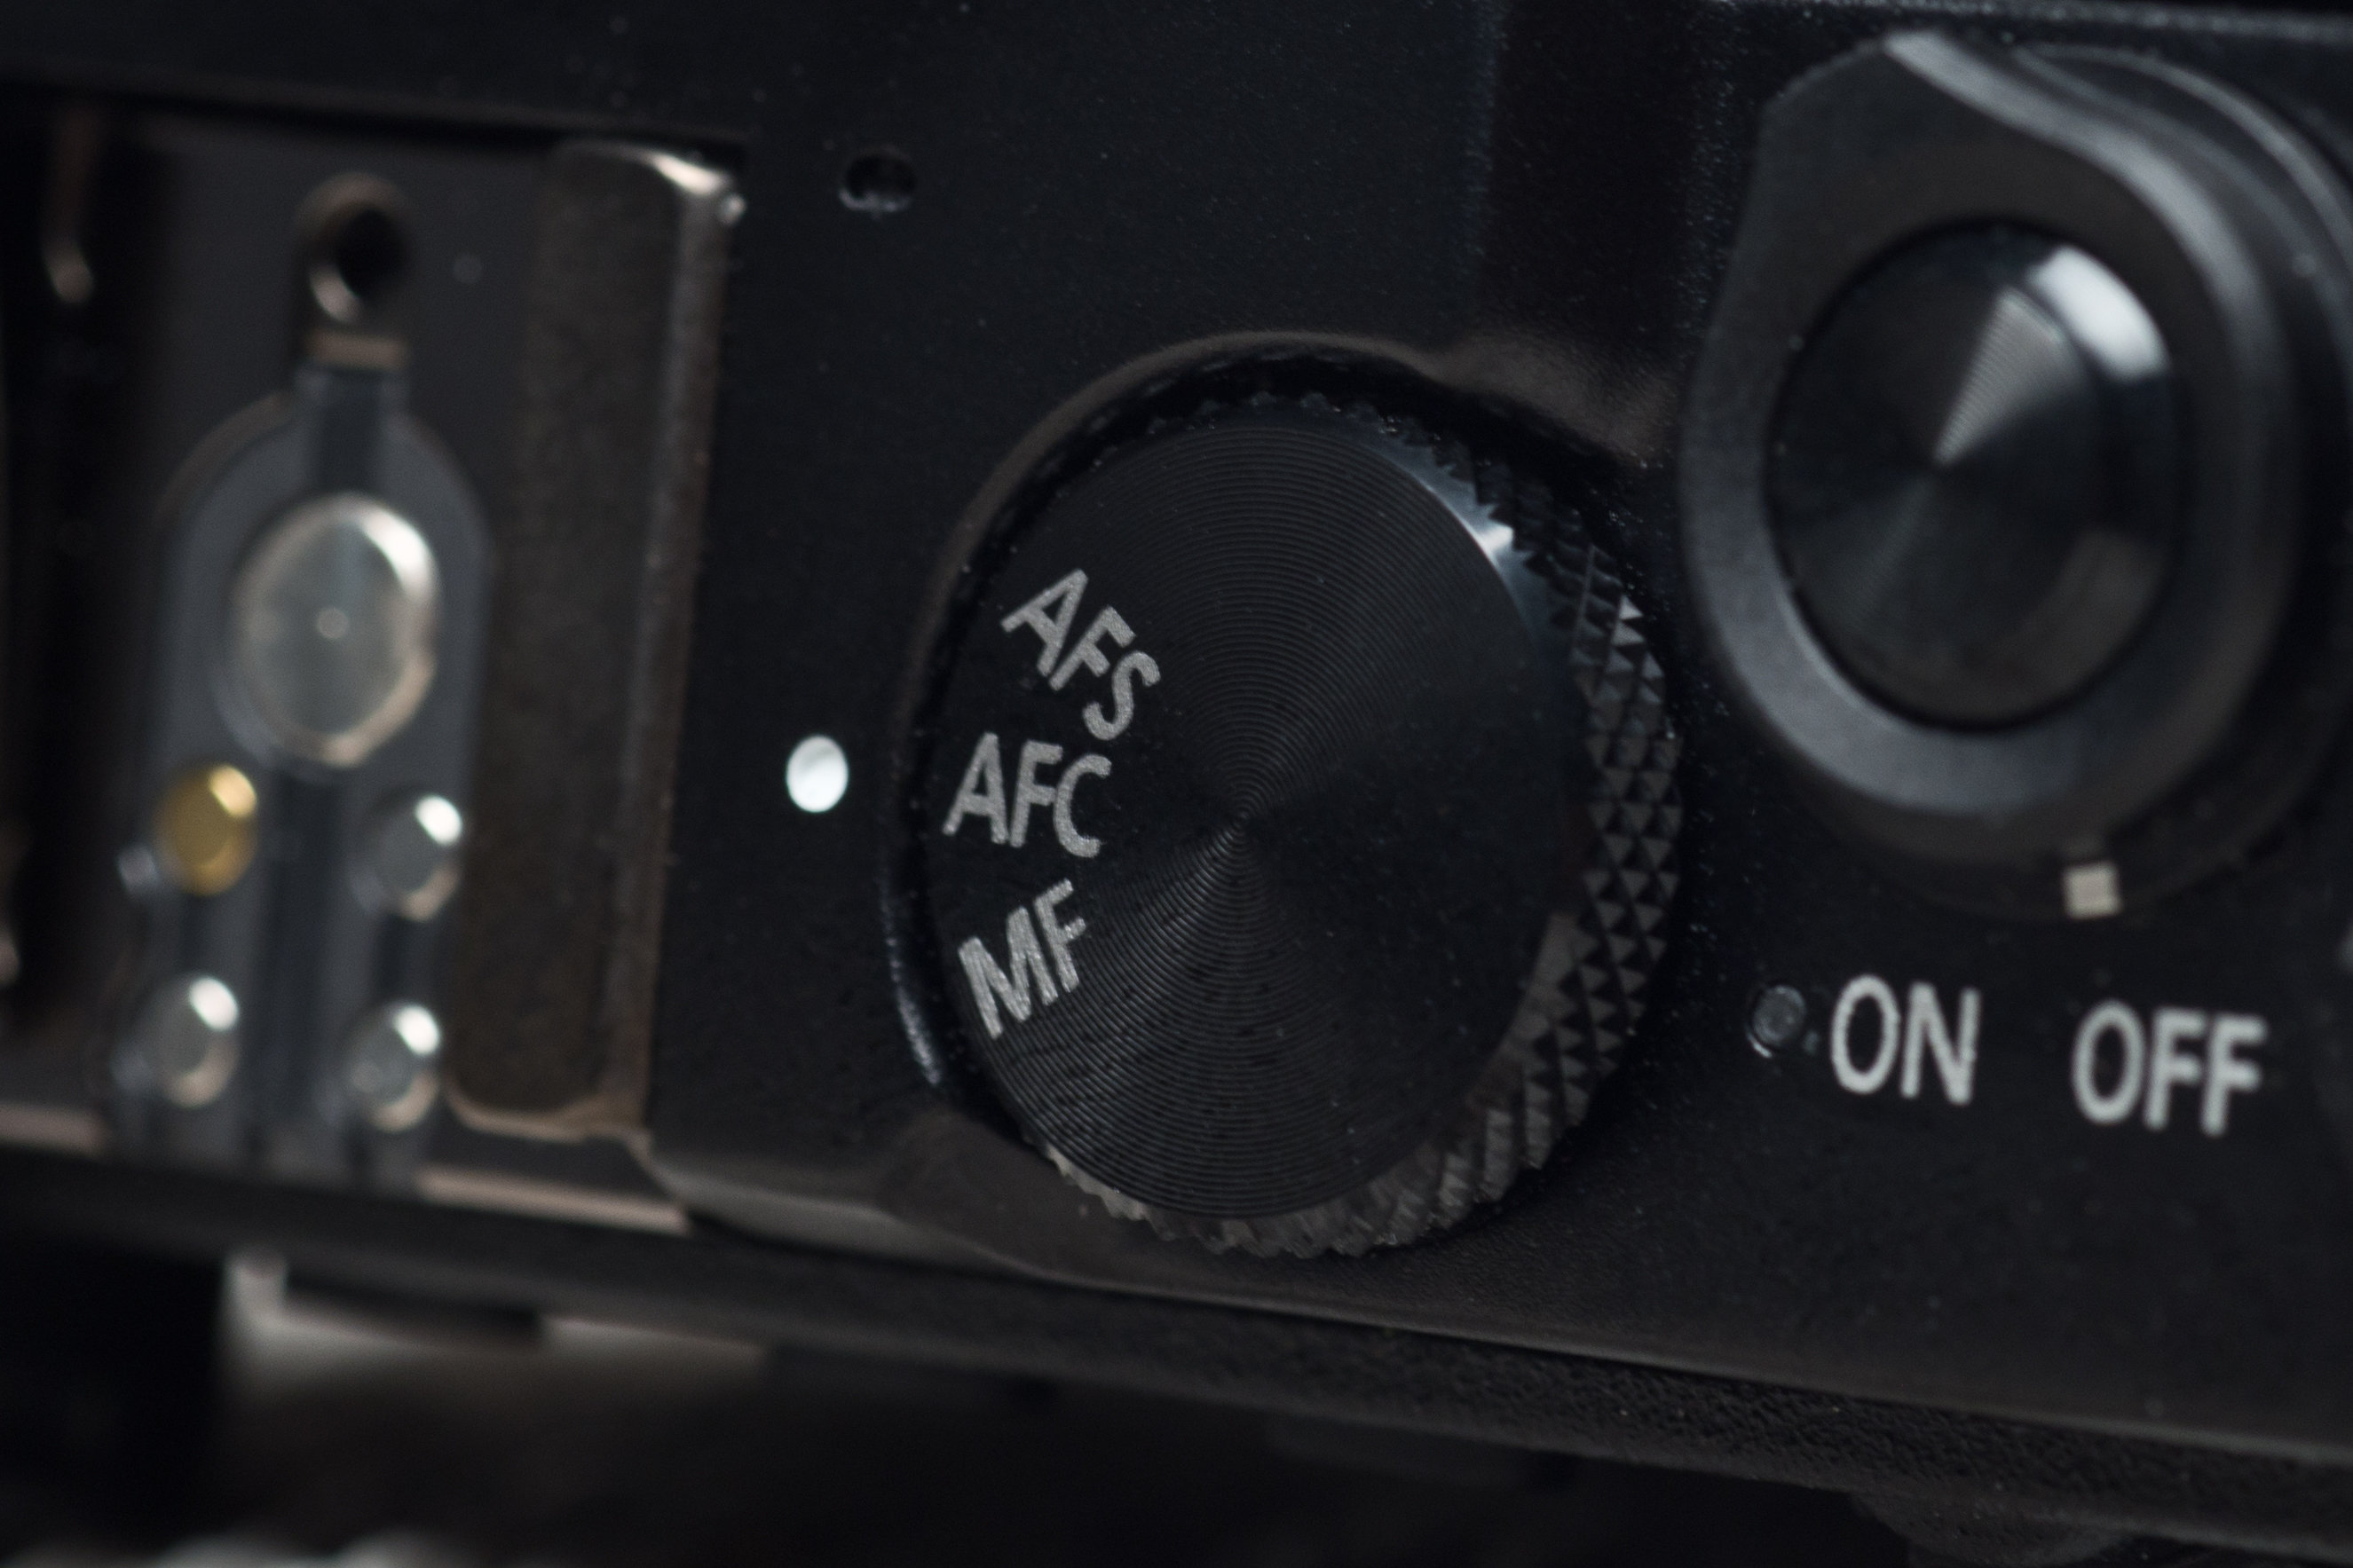 A photo of the Panasonic Lumix GM5's focus mode dial.